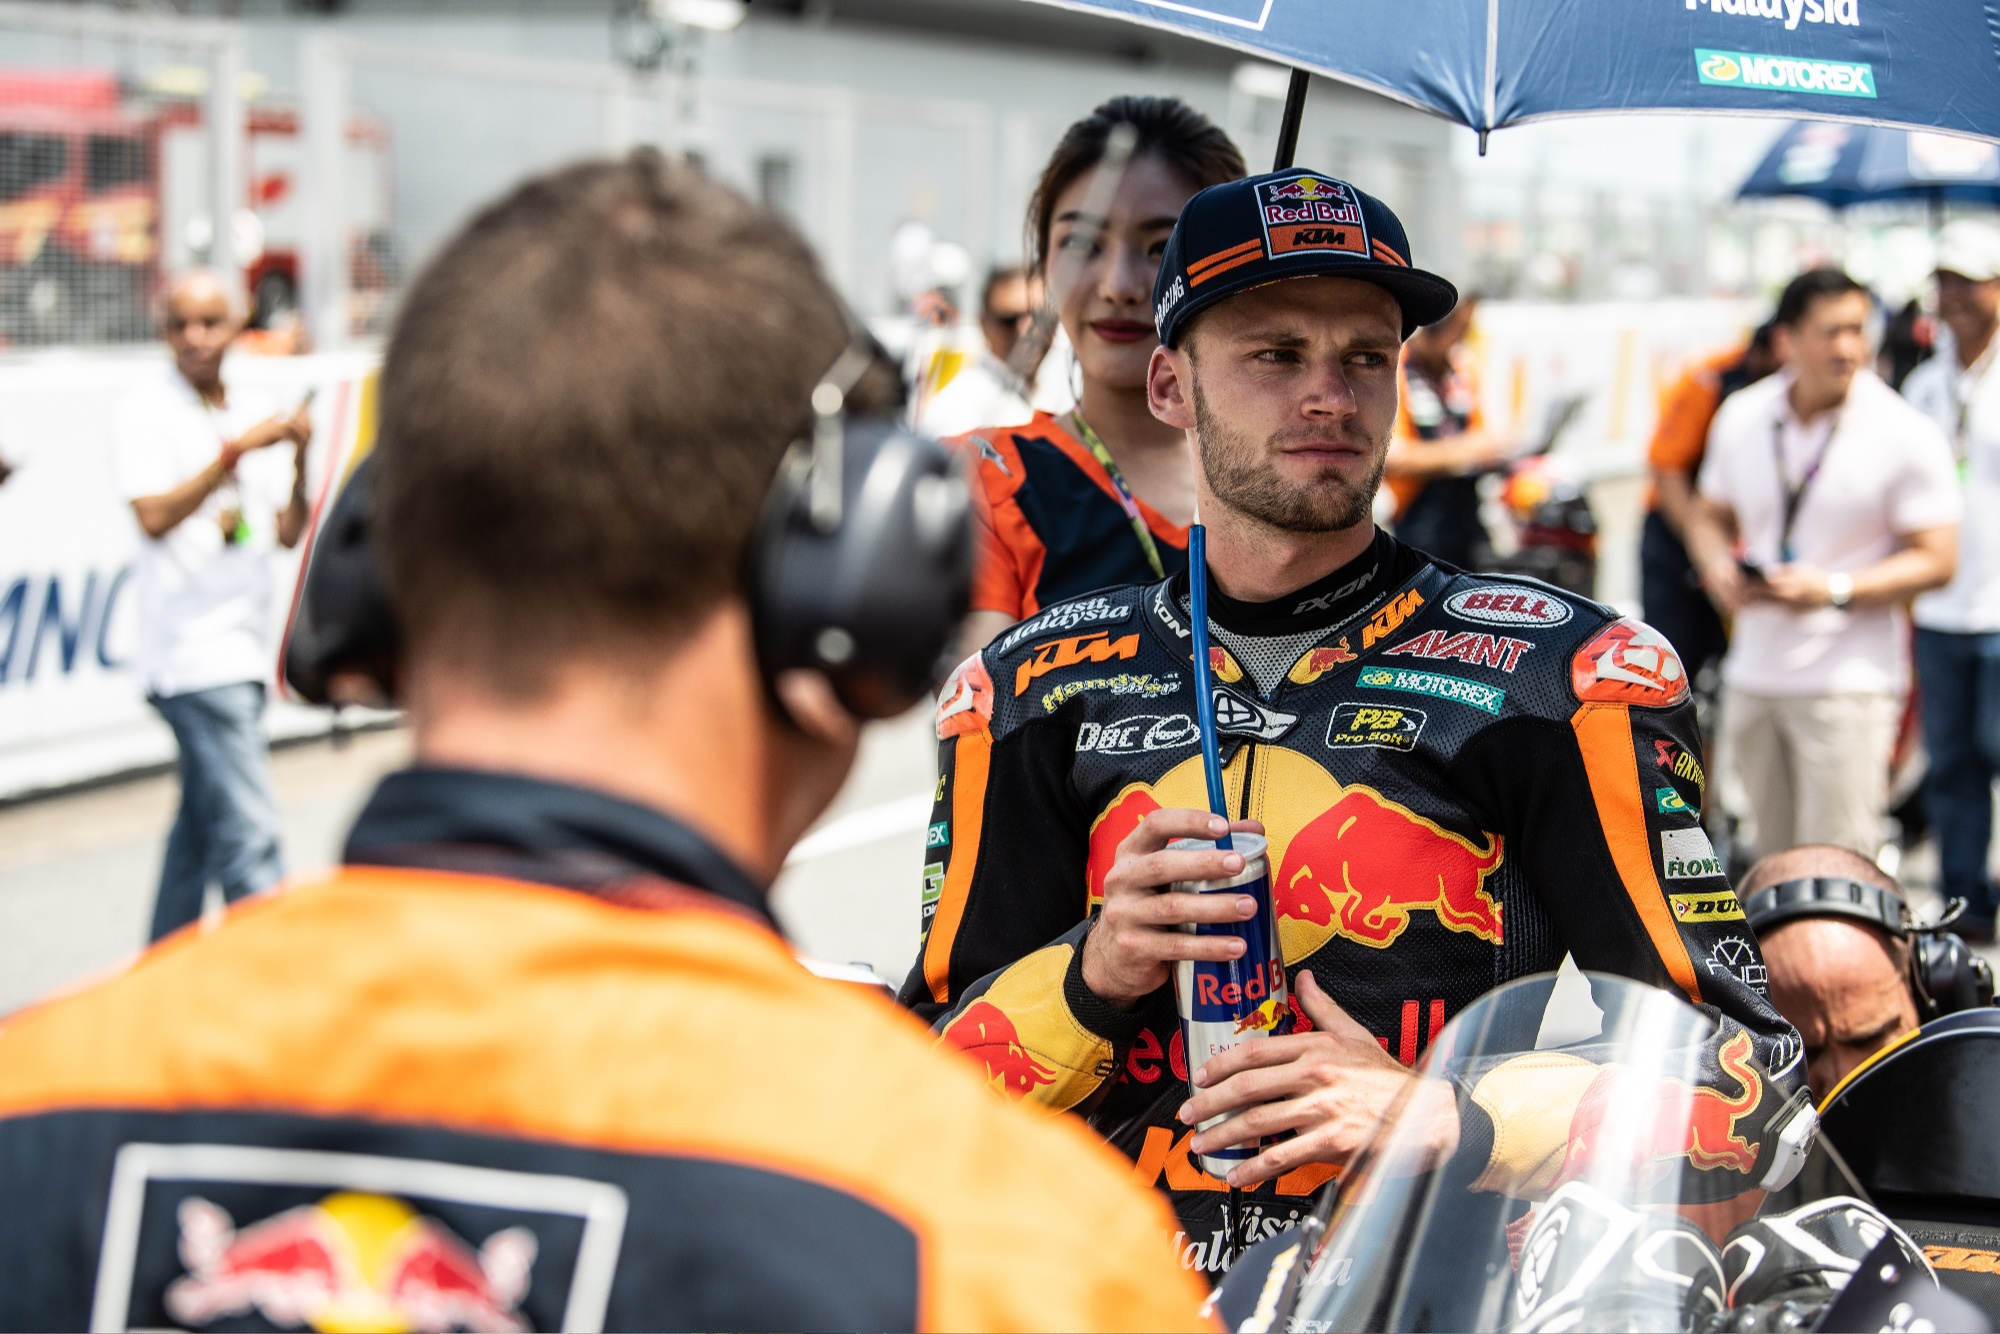 Brad Binder: KTM's next big thing